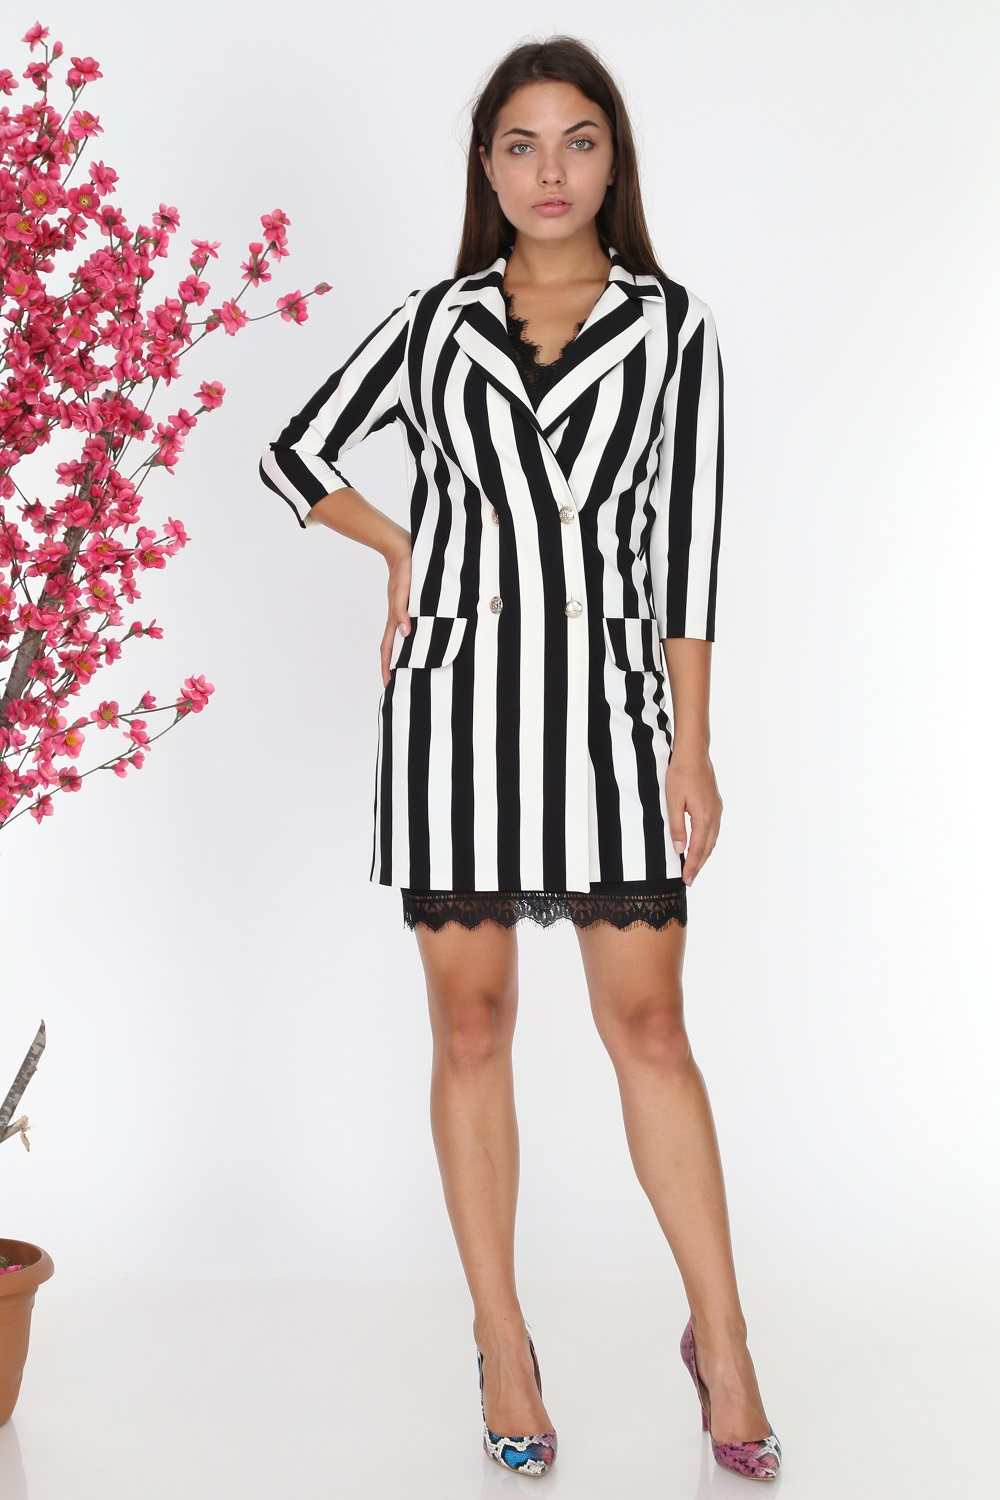 Lace Black and White Striped Jacket Dress